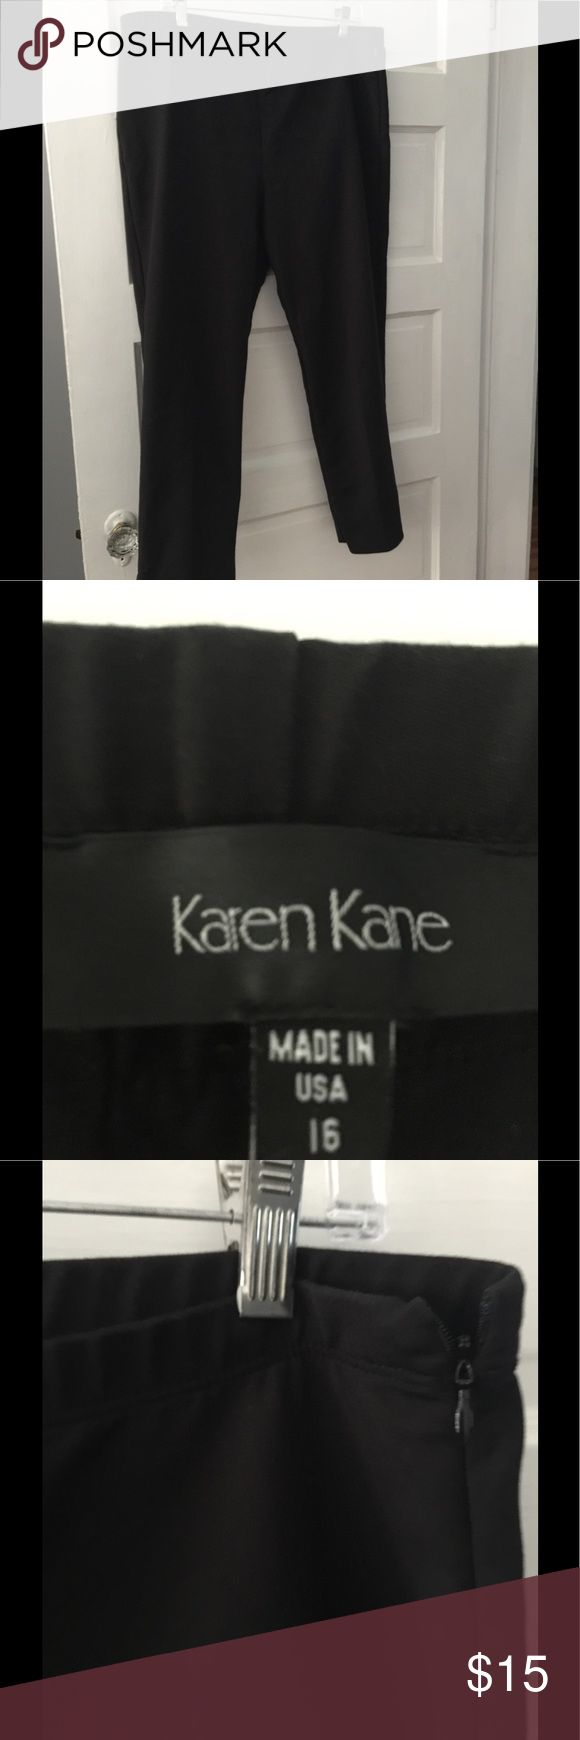 Karen Kane size 16 black cropped pants Karen Kane size 16 cropped pant inseam 26 , elastic waistband flat measures about 19  inches . Hidden side zipper . Slits at ankles . Good condition no tears  or stains Karen Kane Pants Ankle & Cropped